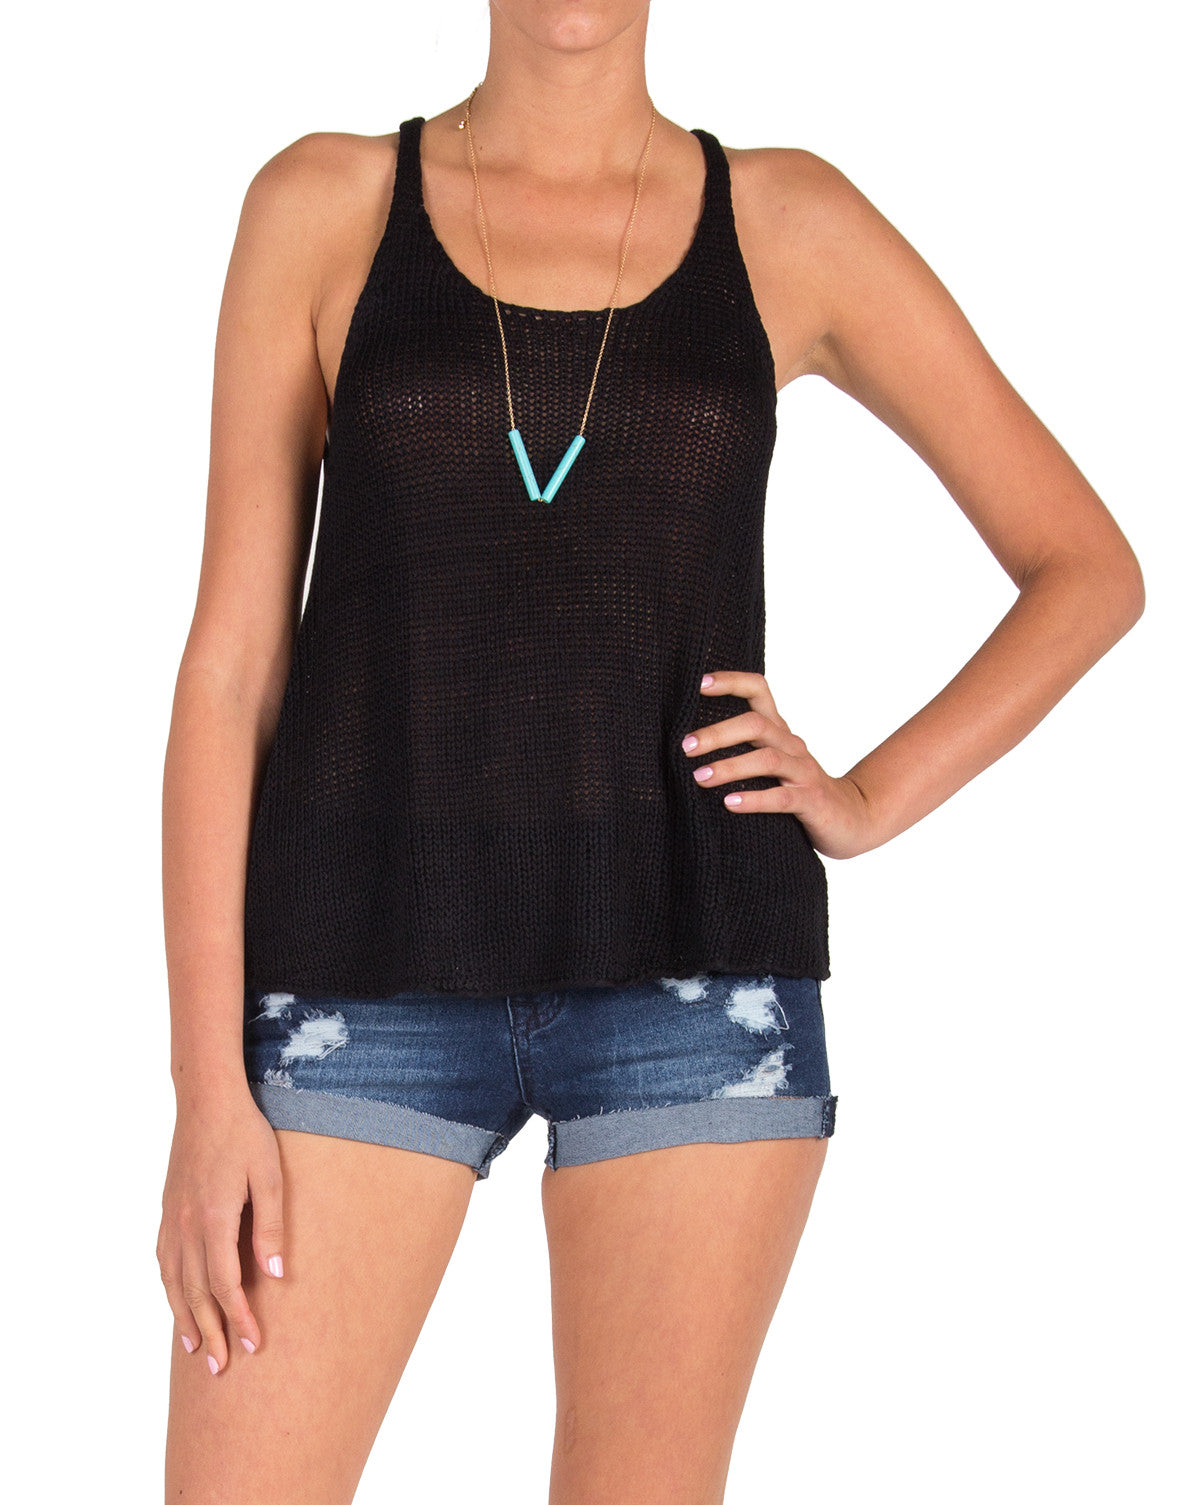 Simple Knit Tank - Black - Small - 2020AVE